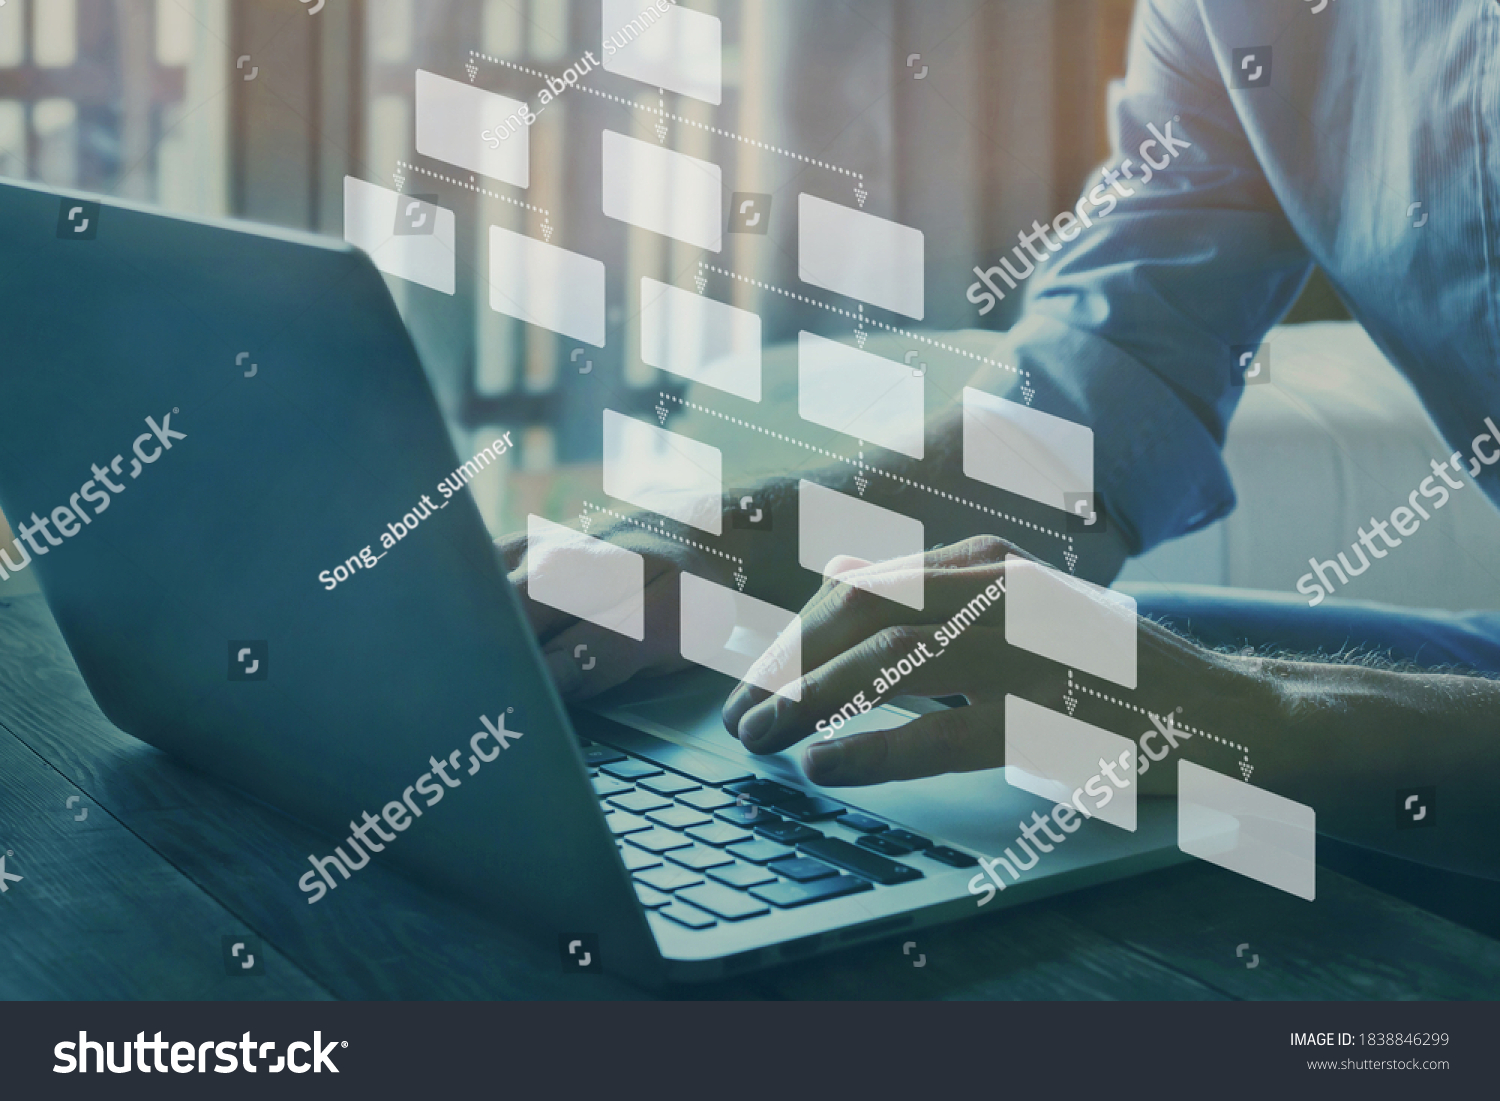 mindmap or organigram on virtual screen, person looking at hierarchy scheme, business structure #1838846299